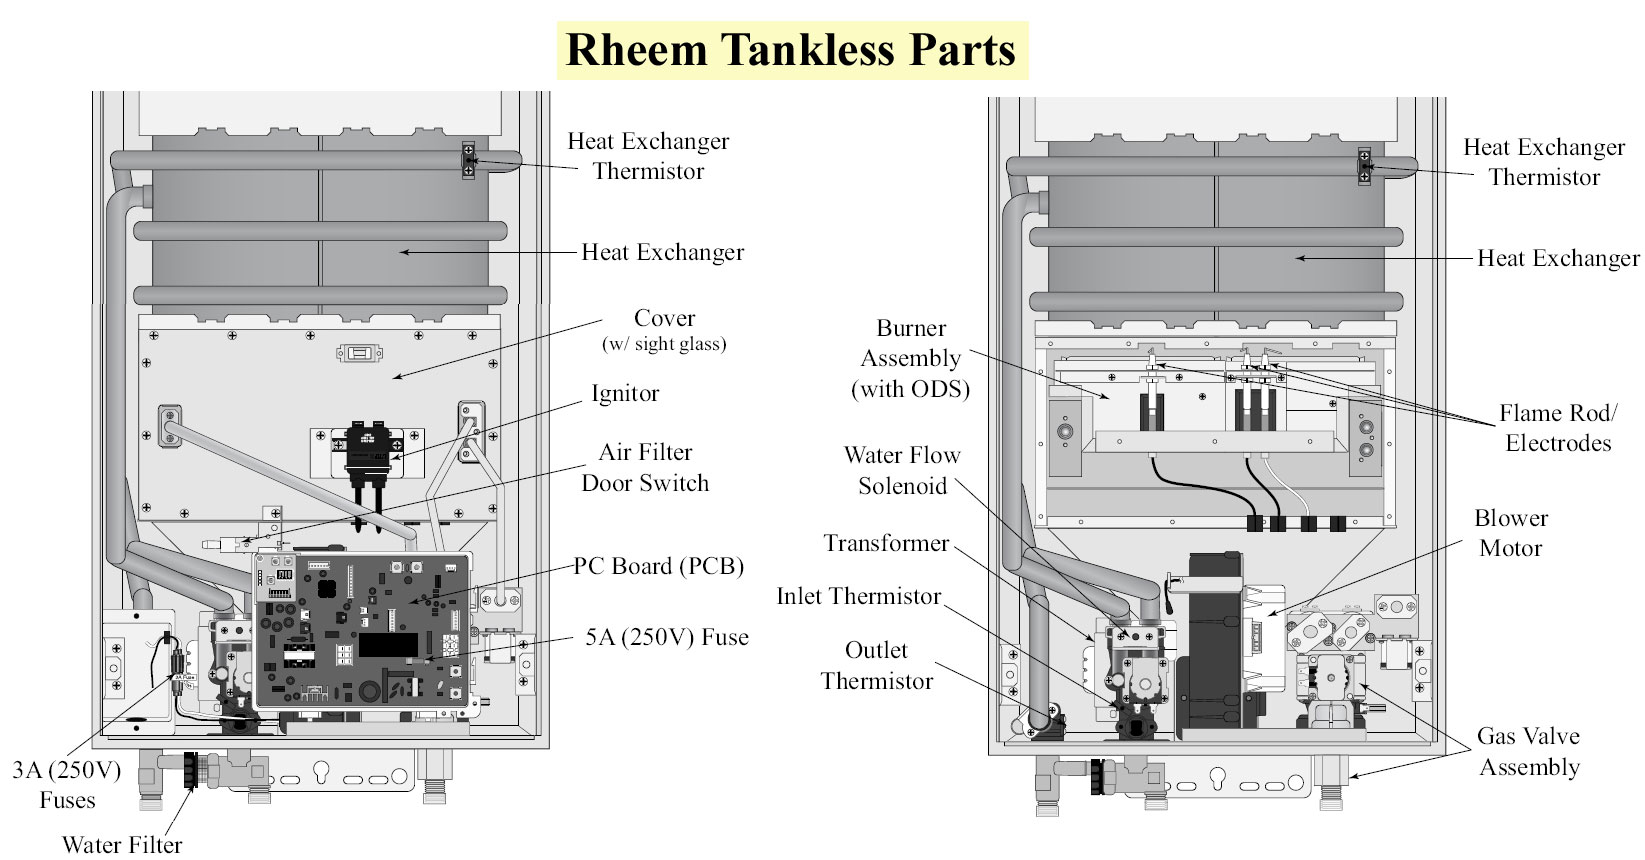 Rheem Rte 18 Wiring Diagram 27 Images Defrost Timer Diagrams Tankless Parts 860 How To Wire Water Heater Thermostat Readingrat Net